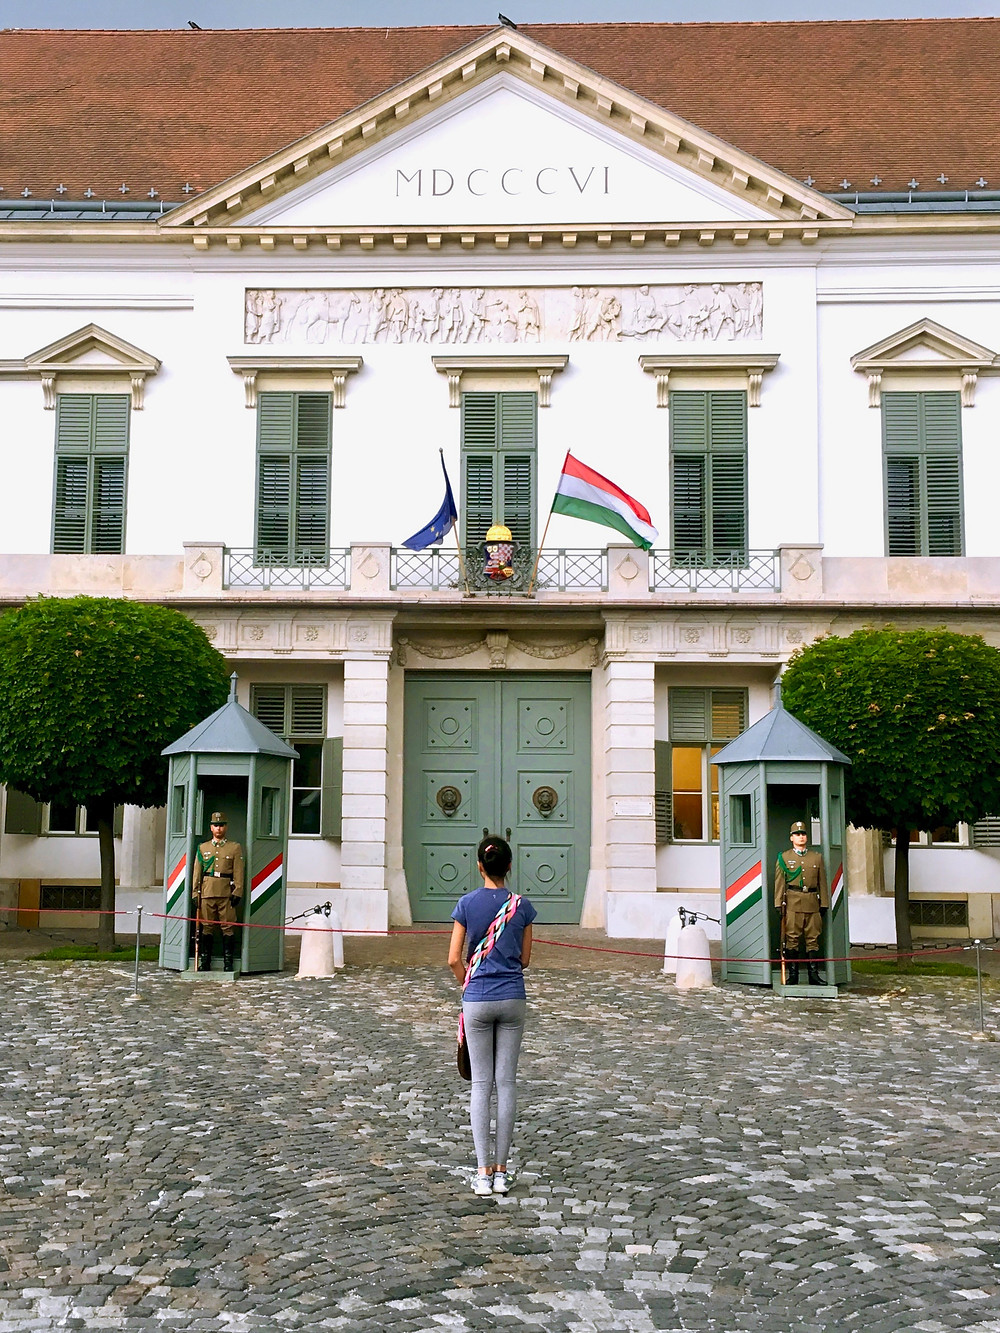 Eryn standing in front of the doors of Sándor Palace with its red roof and green windows, doors, and guard posts in Budapest